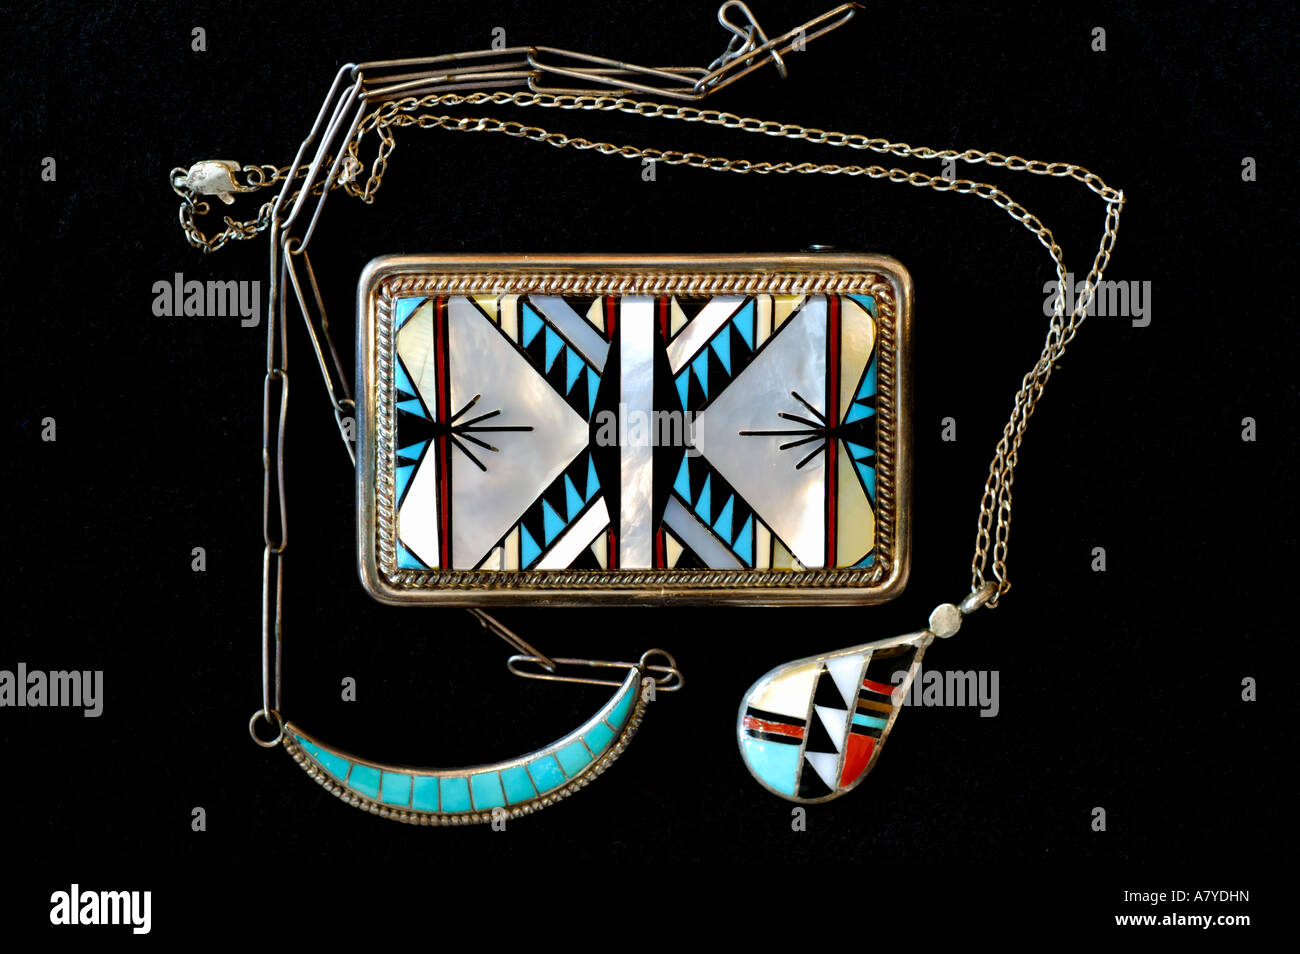 Southwest, American Indian art & handicrafts. Classic Zuni inlay jewelry. Silver belt buckle, multi-stone necklaces. Stock Photo